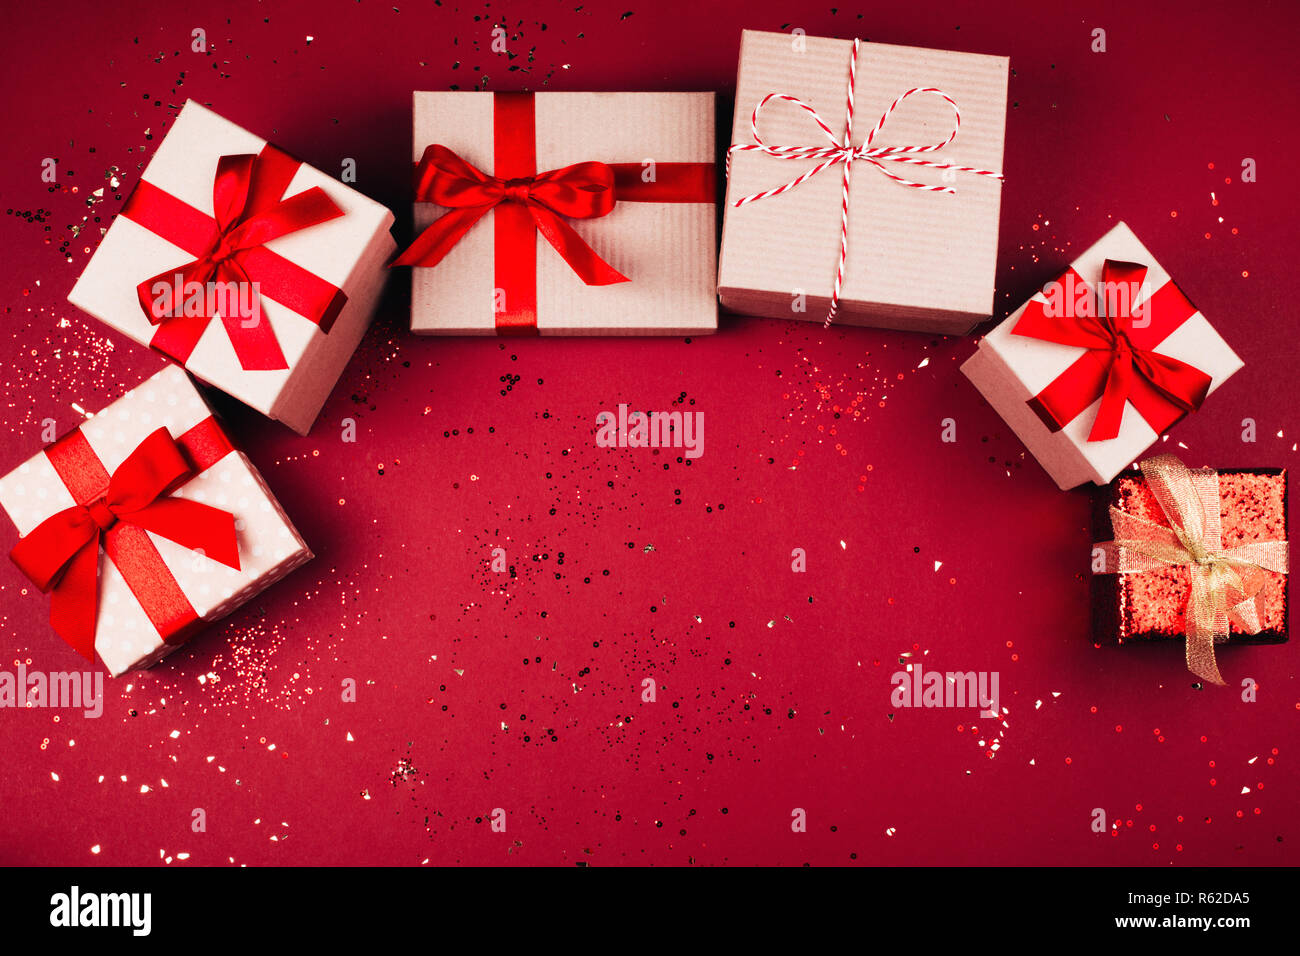 Many present boxes with red bow on red background. Flat lay style. Stock Photo